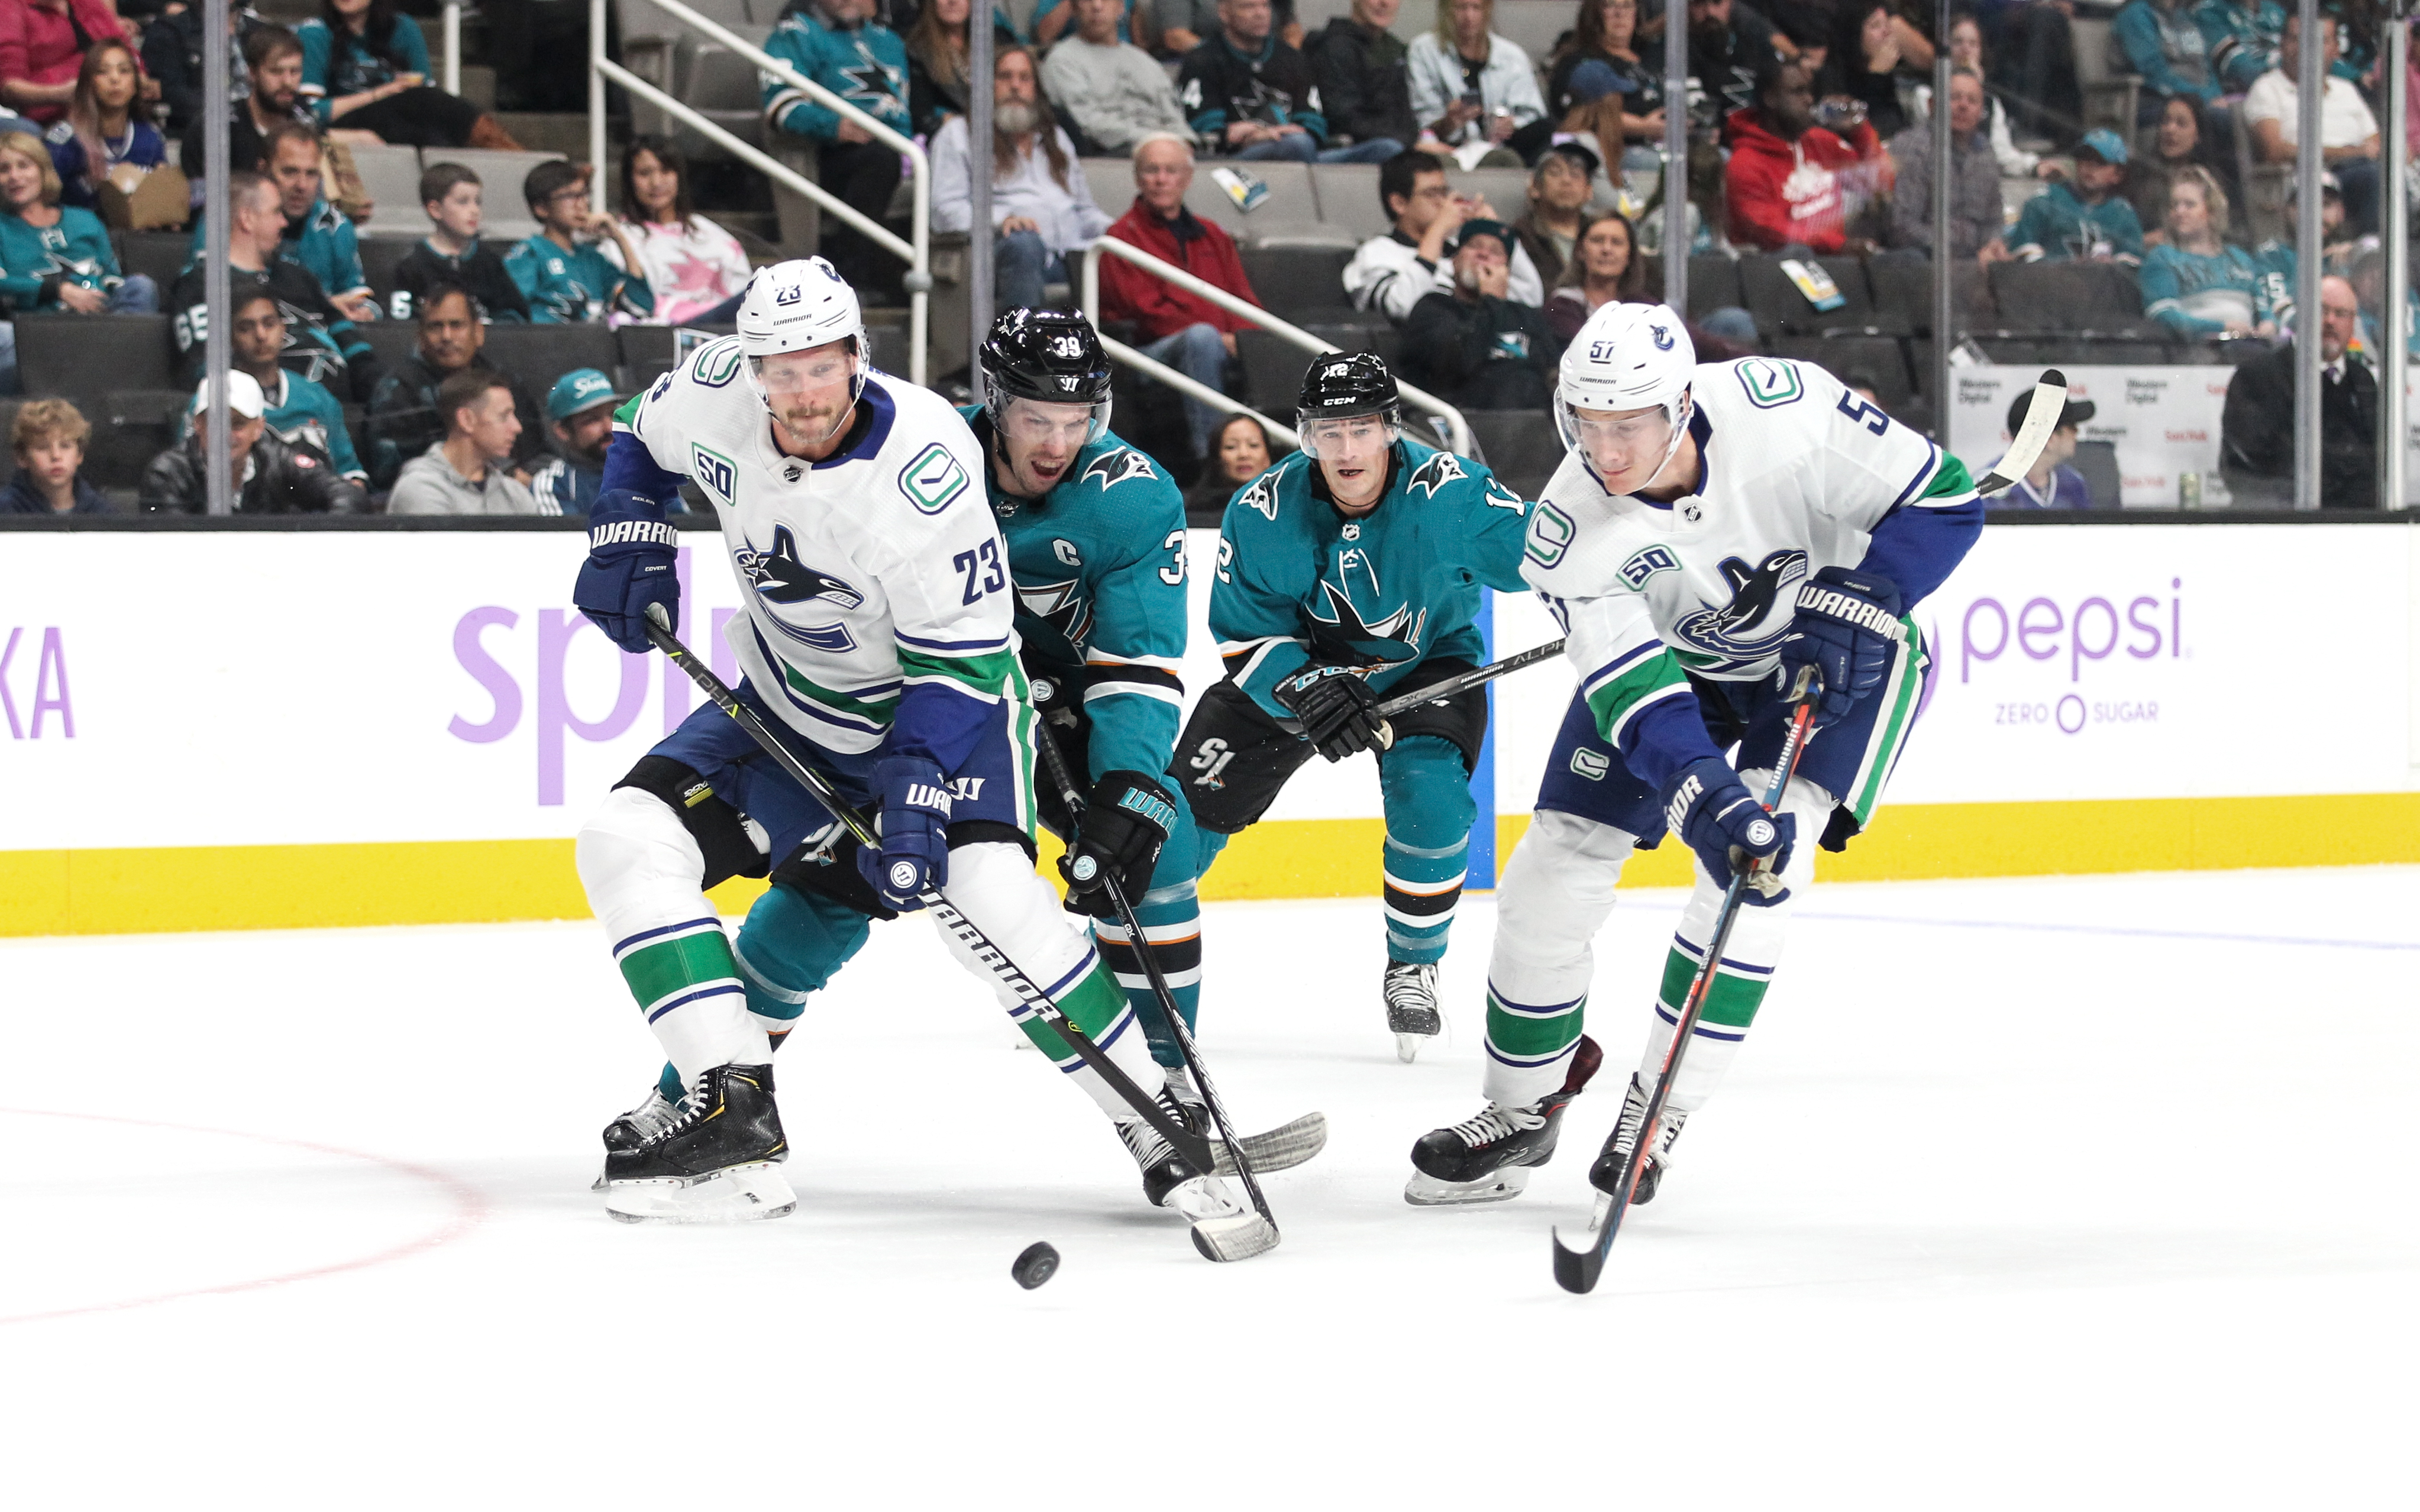 Logan Couture #39 of the San Jose Sharks battles for the puck against Alexander Edler #23 of the Vancouver Canucks at SAP Center on November 2, 2019 in San Jose, California